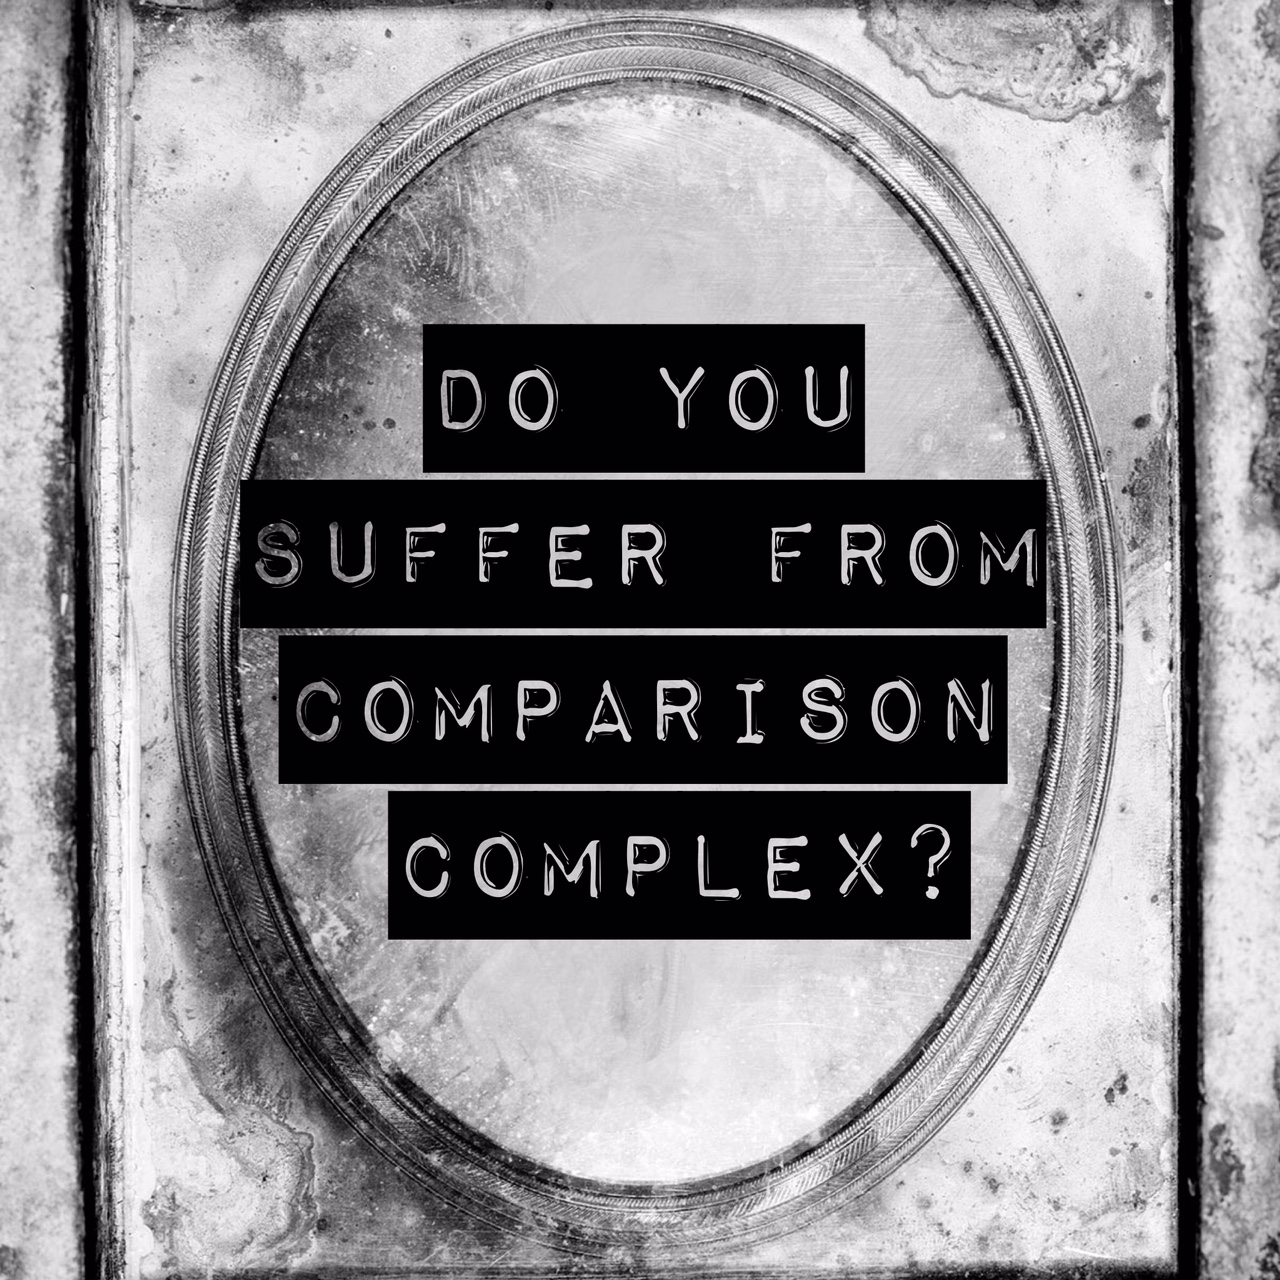 """You might be thinking, """"What is comparison complex."""" Comparison Complex is when we essentially rate ourselves against another person. And 99.99% of the time we rate ourselves """"less than"""" the other person.     """"The second our internal competence scale tips from self-assured to self-doubting is the moment we begin feeling defeat. We start questioning our ability, intelligence, strengths – our entire future. When we feel inadequate, uncomfortable feelings such as anxiety, anger, disappointment, hopelessness, and fear of failure become the norm. The net effect of feeling incompetent is disastrous: we stop trying, learning, growing, and contributing. We start compulsively comparing ourselves to others, and we feel we don't measure up. Our charge in life can feel lost altogether because progress feel daunting, if not impossible.""""  - Brendon Burchard   When I read that section a few months ago in The Charge by Brendon Burchard I thought, """"Oh my gosh that is 100% me….Still."""" I couldn't believe that this was still me!?! I have recovered from Anorexia - that's behind me!! I eat healthy and help people all day long feel better about their bodies! How could this still be me?!   I realized that I  shifted  from comparing my body to other peoples' bodies to comparing areas of my life to others. So that anxiety, feelings of incompetence, not measuring up were  still  all therebecause of my comparison complex. I know I'm not alone here. Does this sound like you? Now that I'm awake and aware I see this happening all over the place. And now with the power of social media we're comparing ourselves to people we don't even know! We're comparing ourselves to celebrities, public figures, people on Instagram, etc. We're comparing without knowing a single thing about what's happening on the other side of the posted picture. Many of us who struggled with an eating disorder or body dysmorphia in the past have never fully gotten over it. And while we are eating better and working out in a kind"""